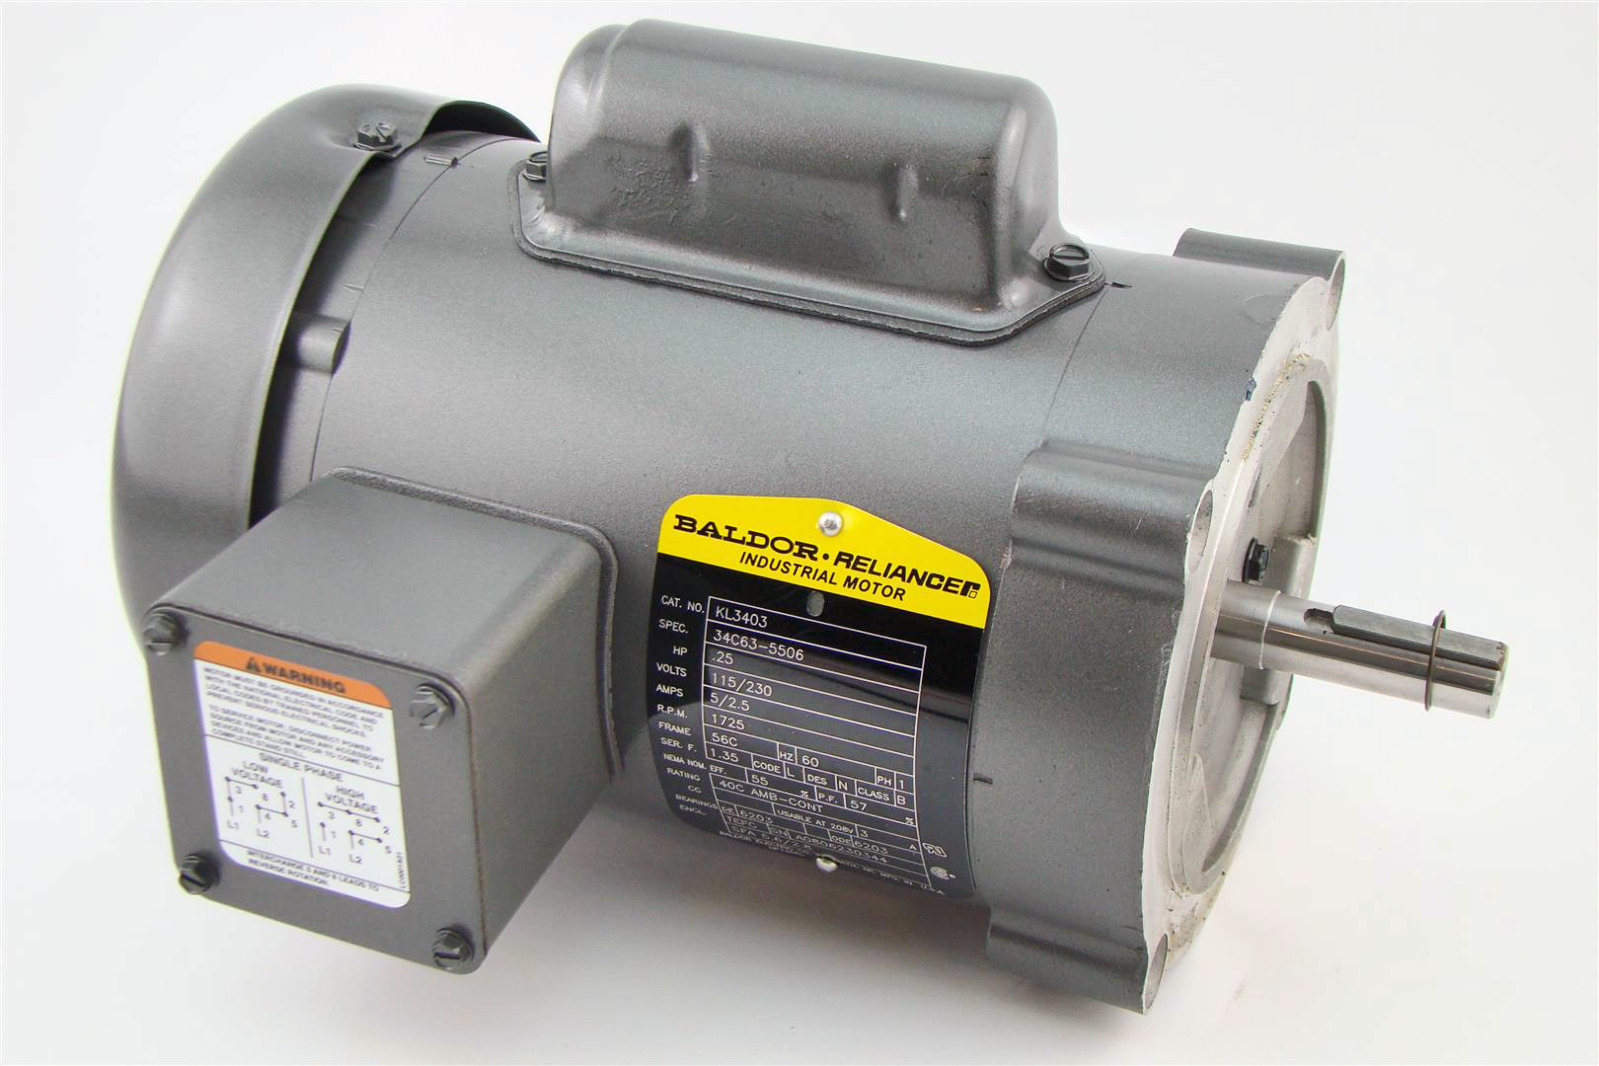 Baldor reliancer industrial motor 25hp 115 230v single for Baldor industrial motor parts